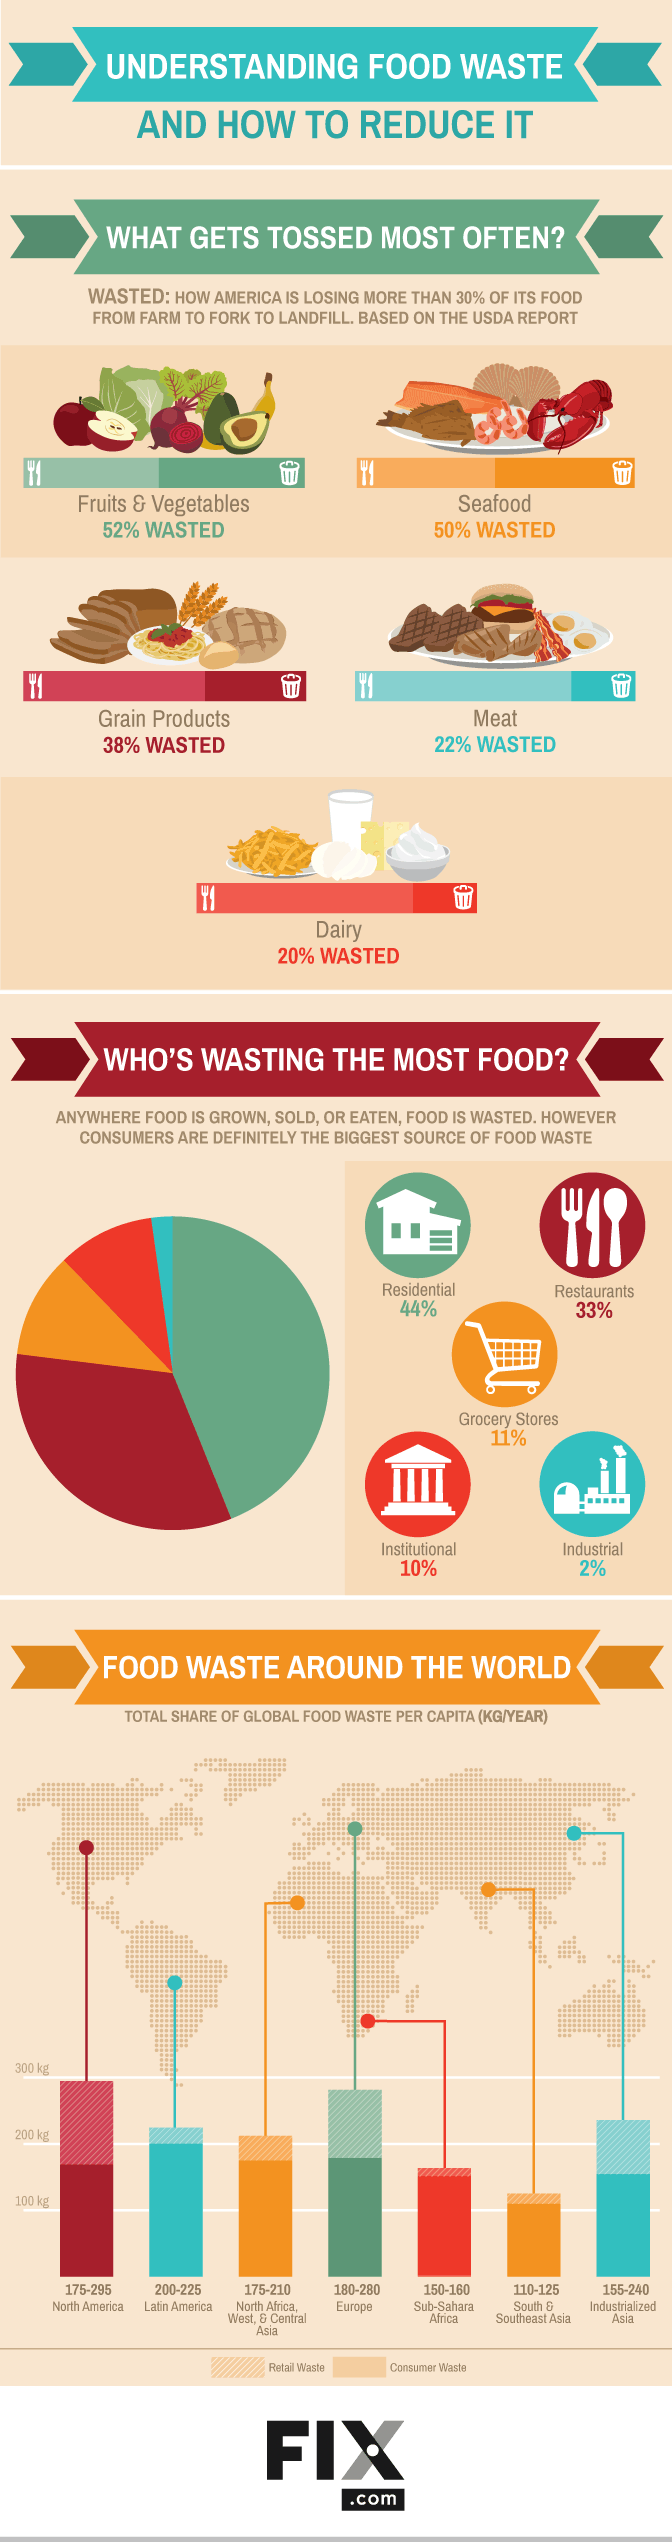 Understanding Food Waste And How To Reduce It